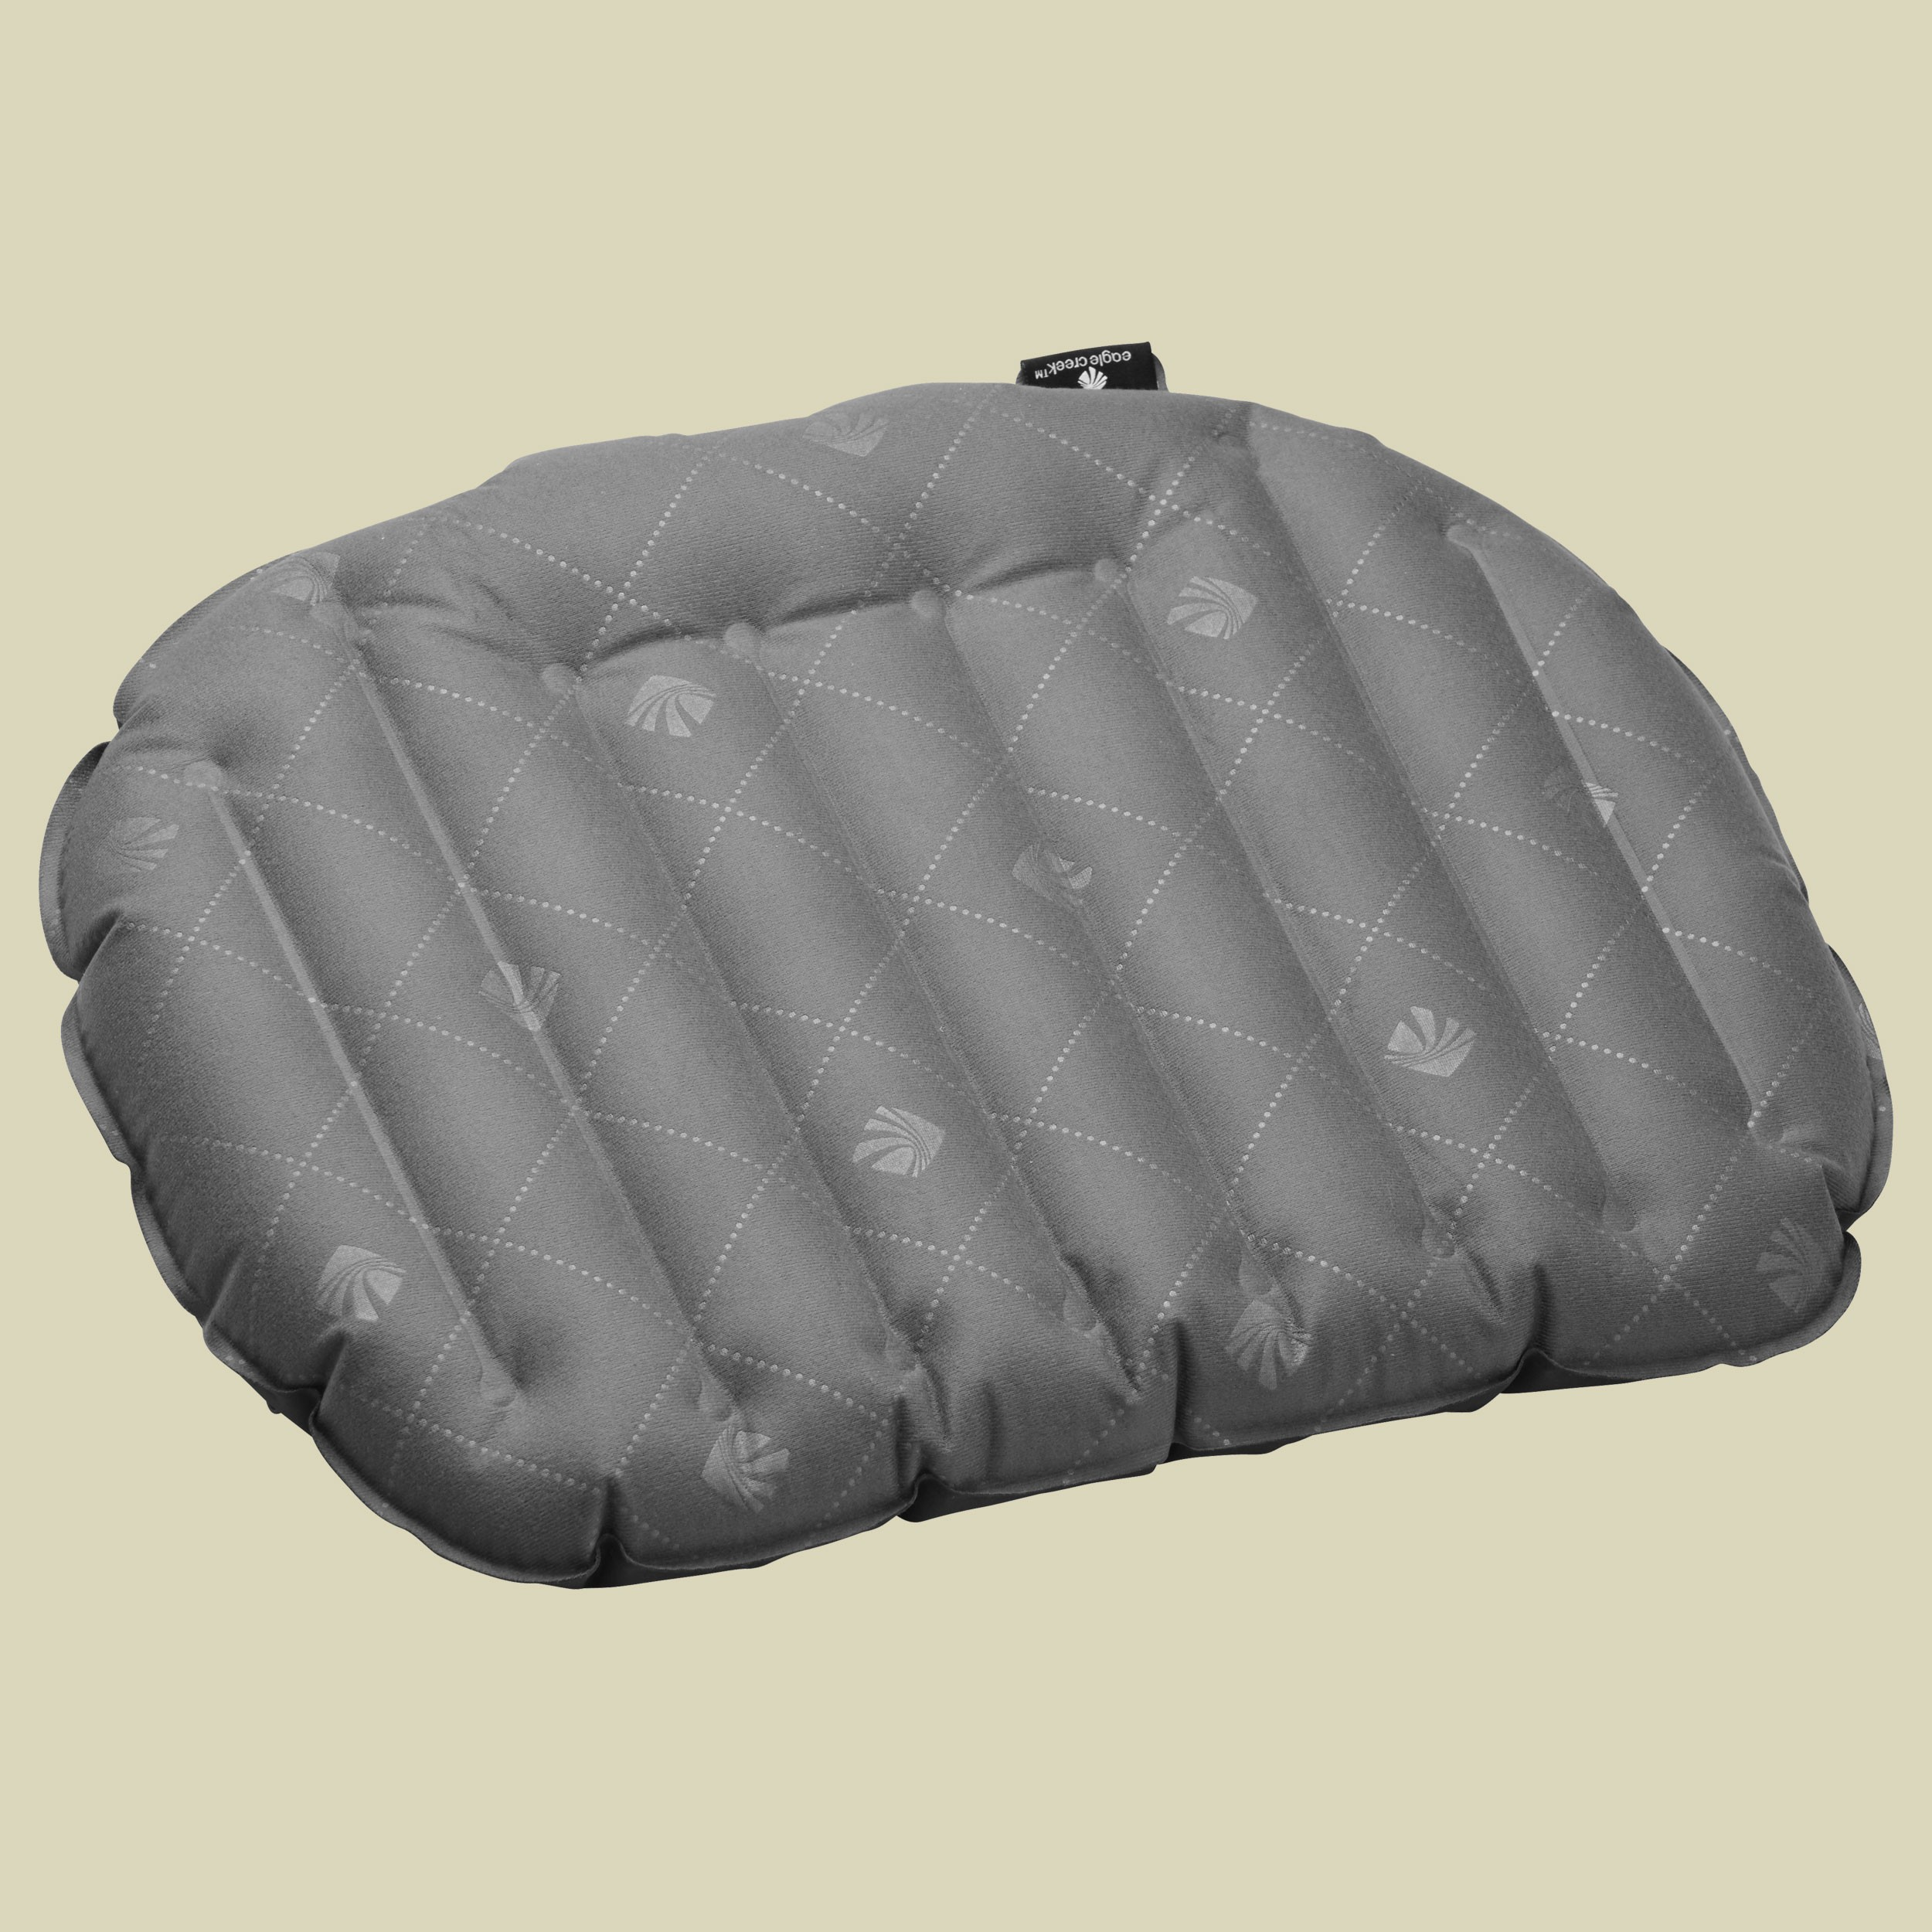 Fast Inflate Seat Cushion